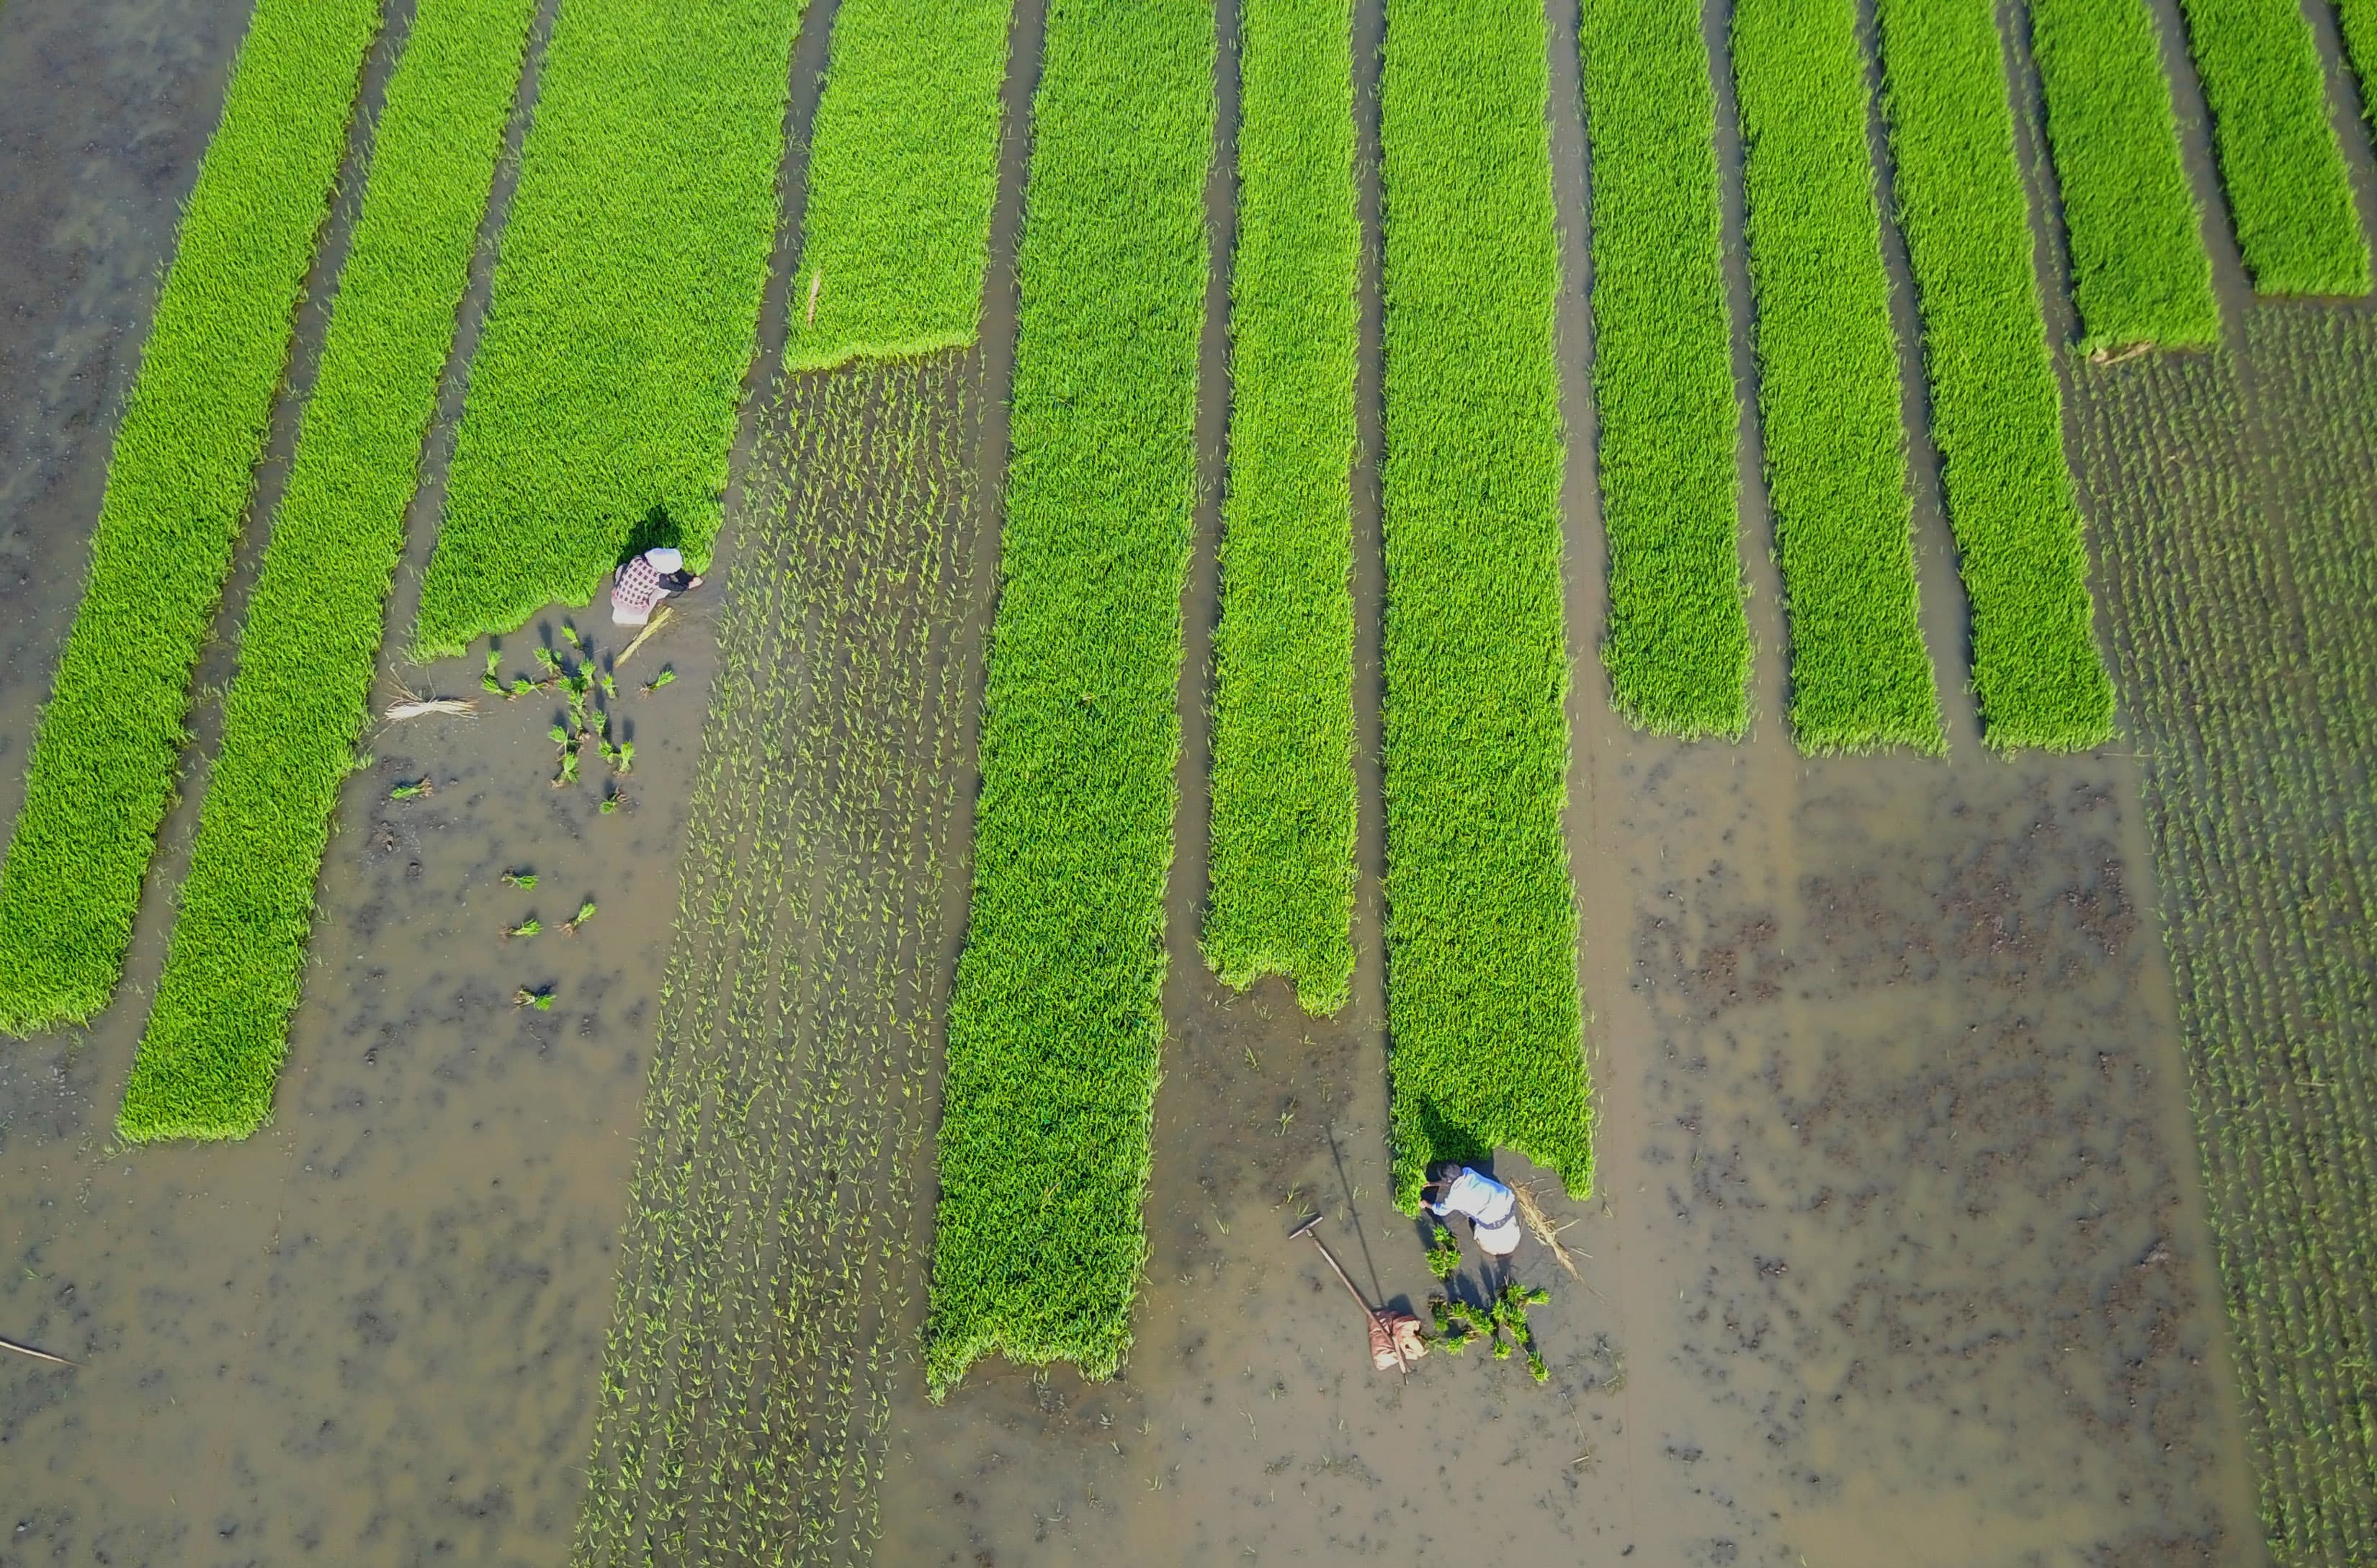 Asia is facing a food crisis and needs another $800 billion in the next 10 years to solve it